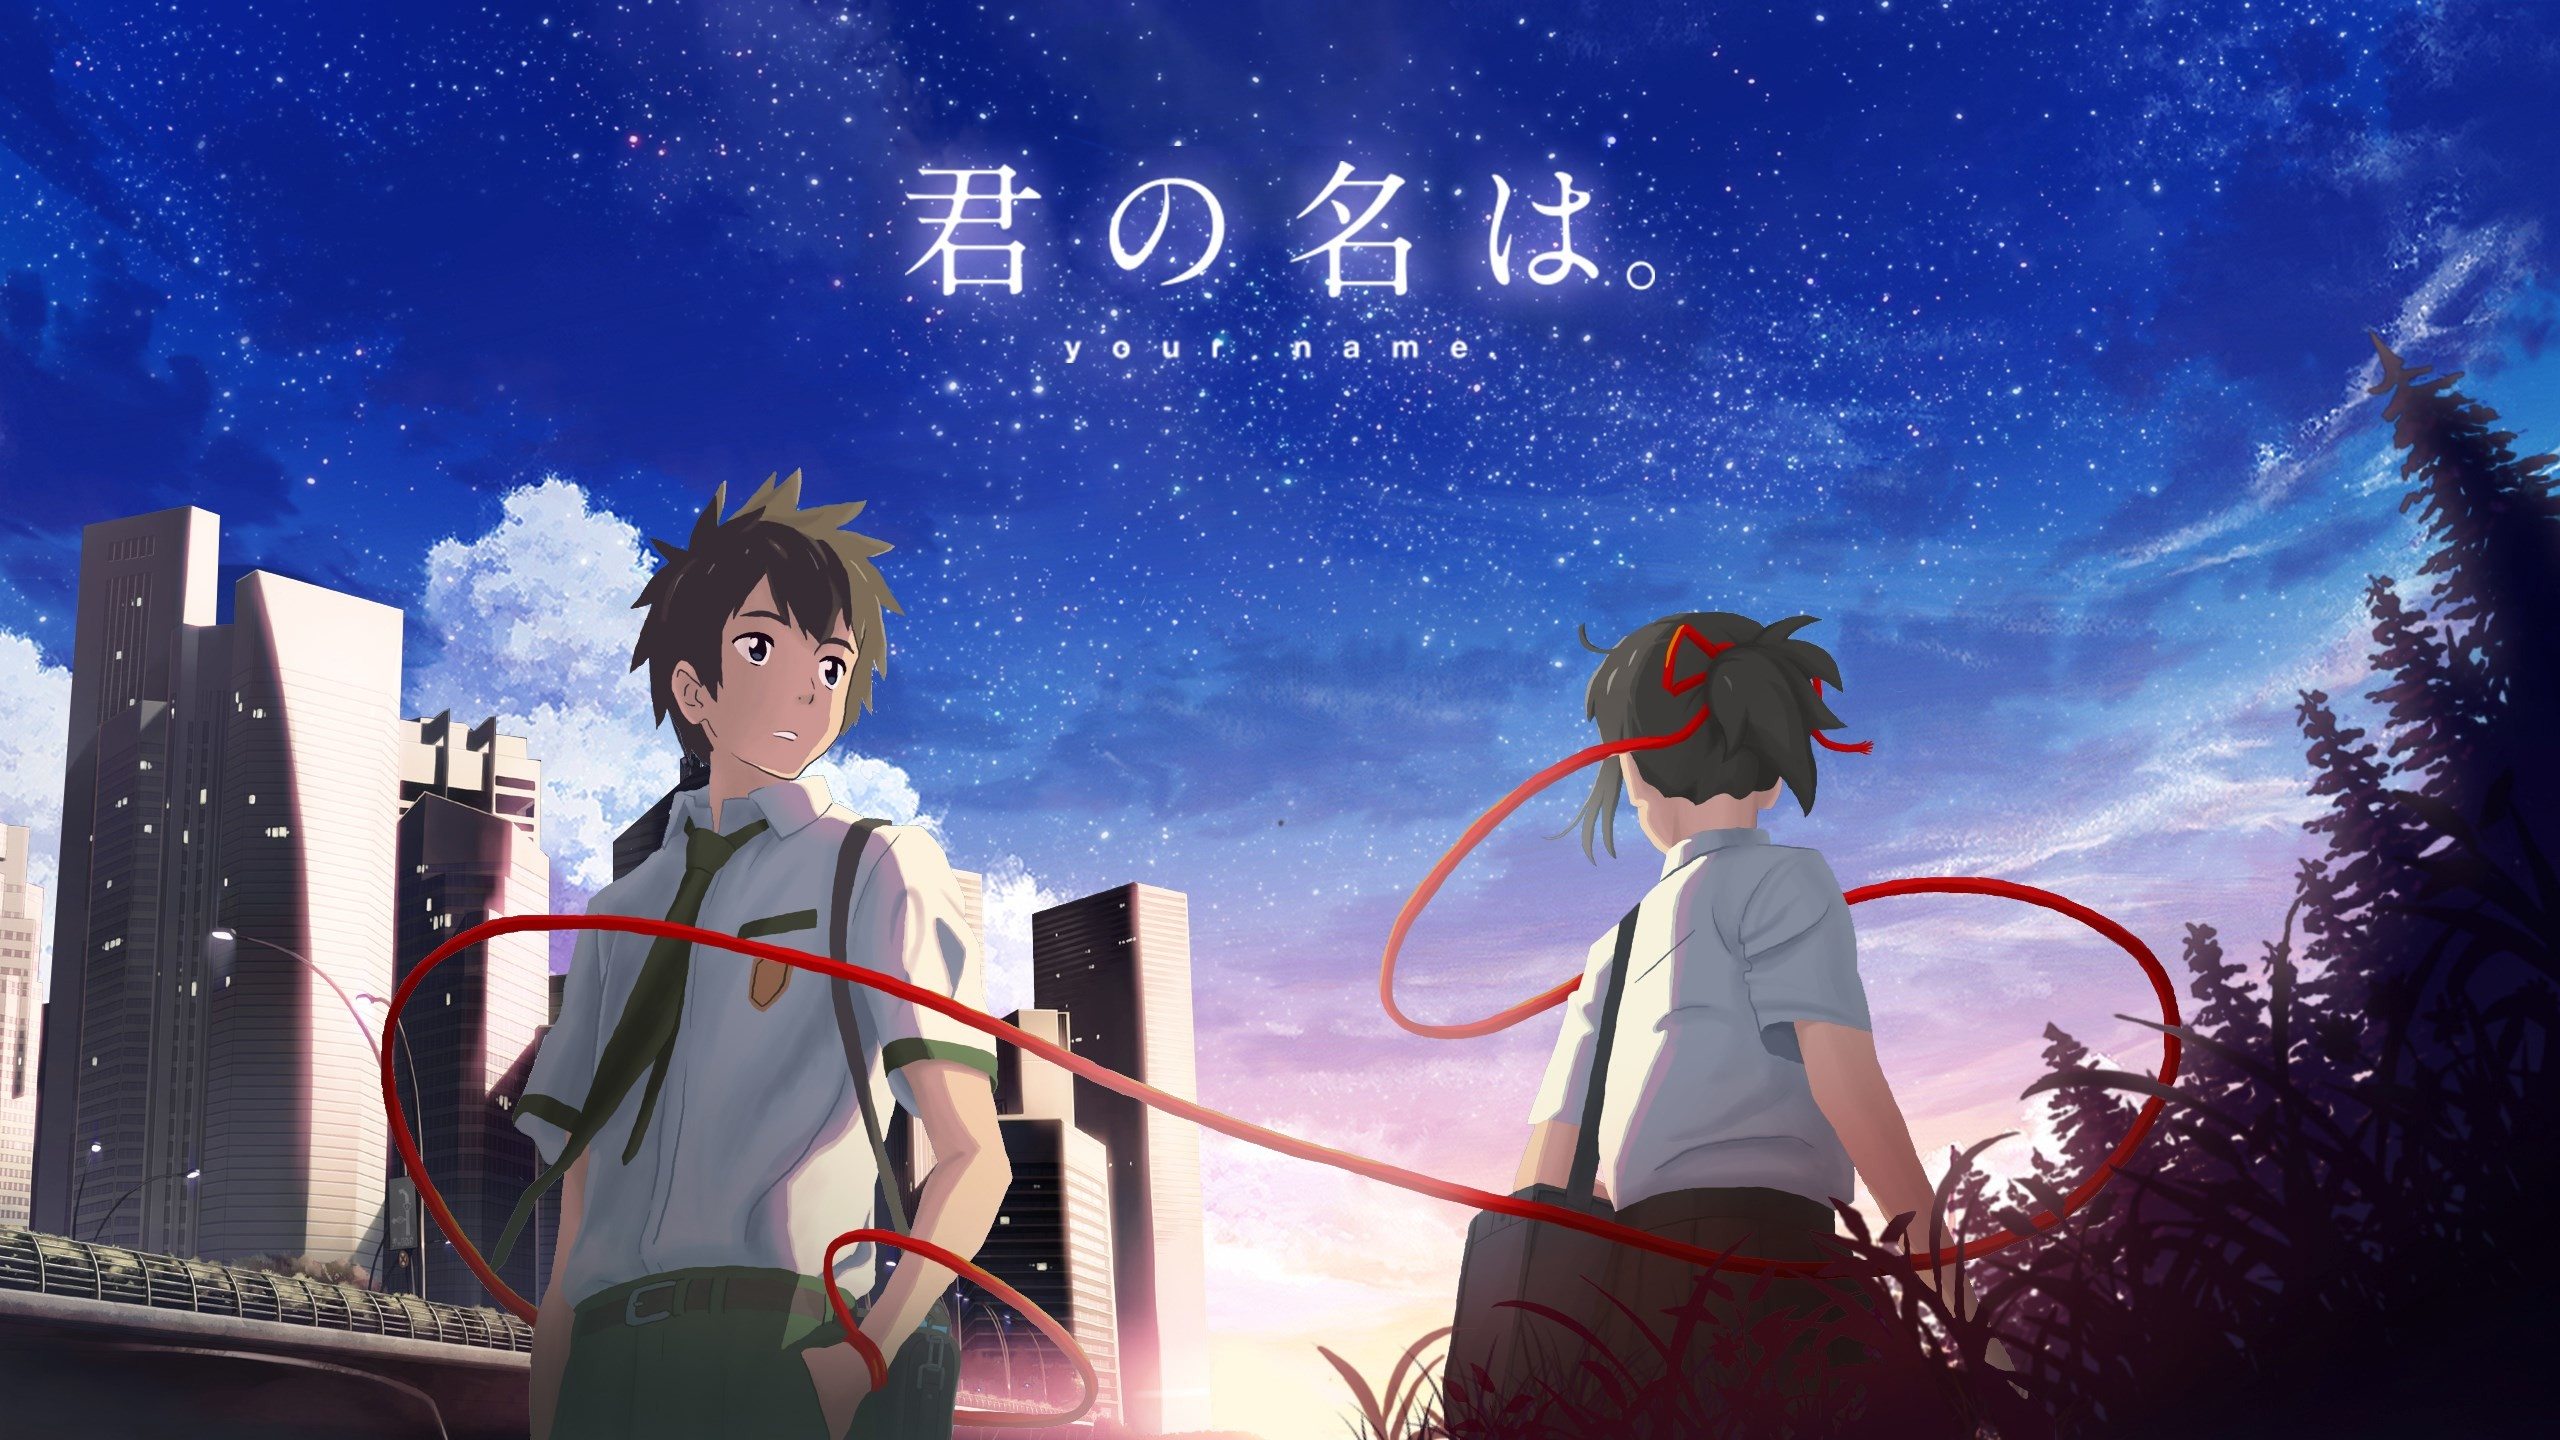 Your Name Hd Wallpaper Posted By Ethan Johnson